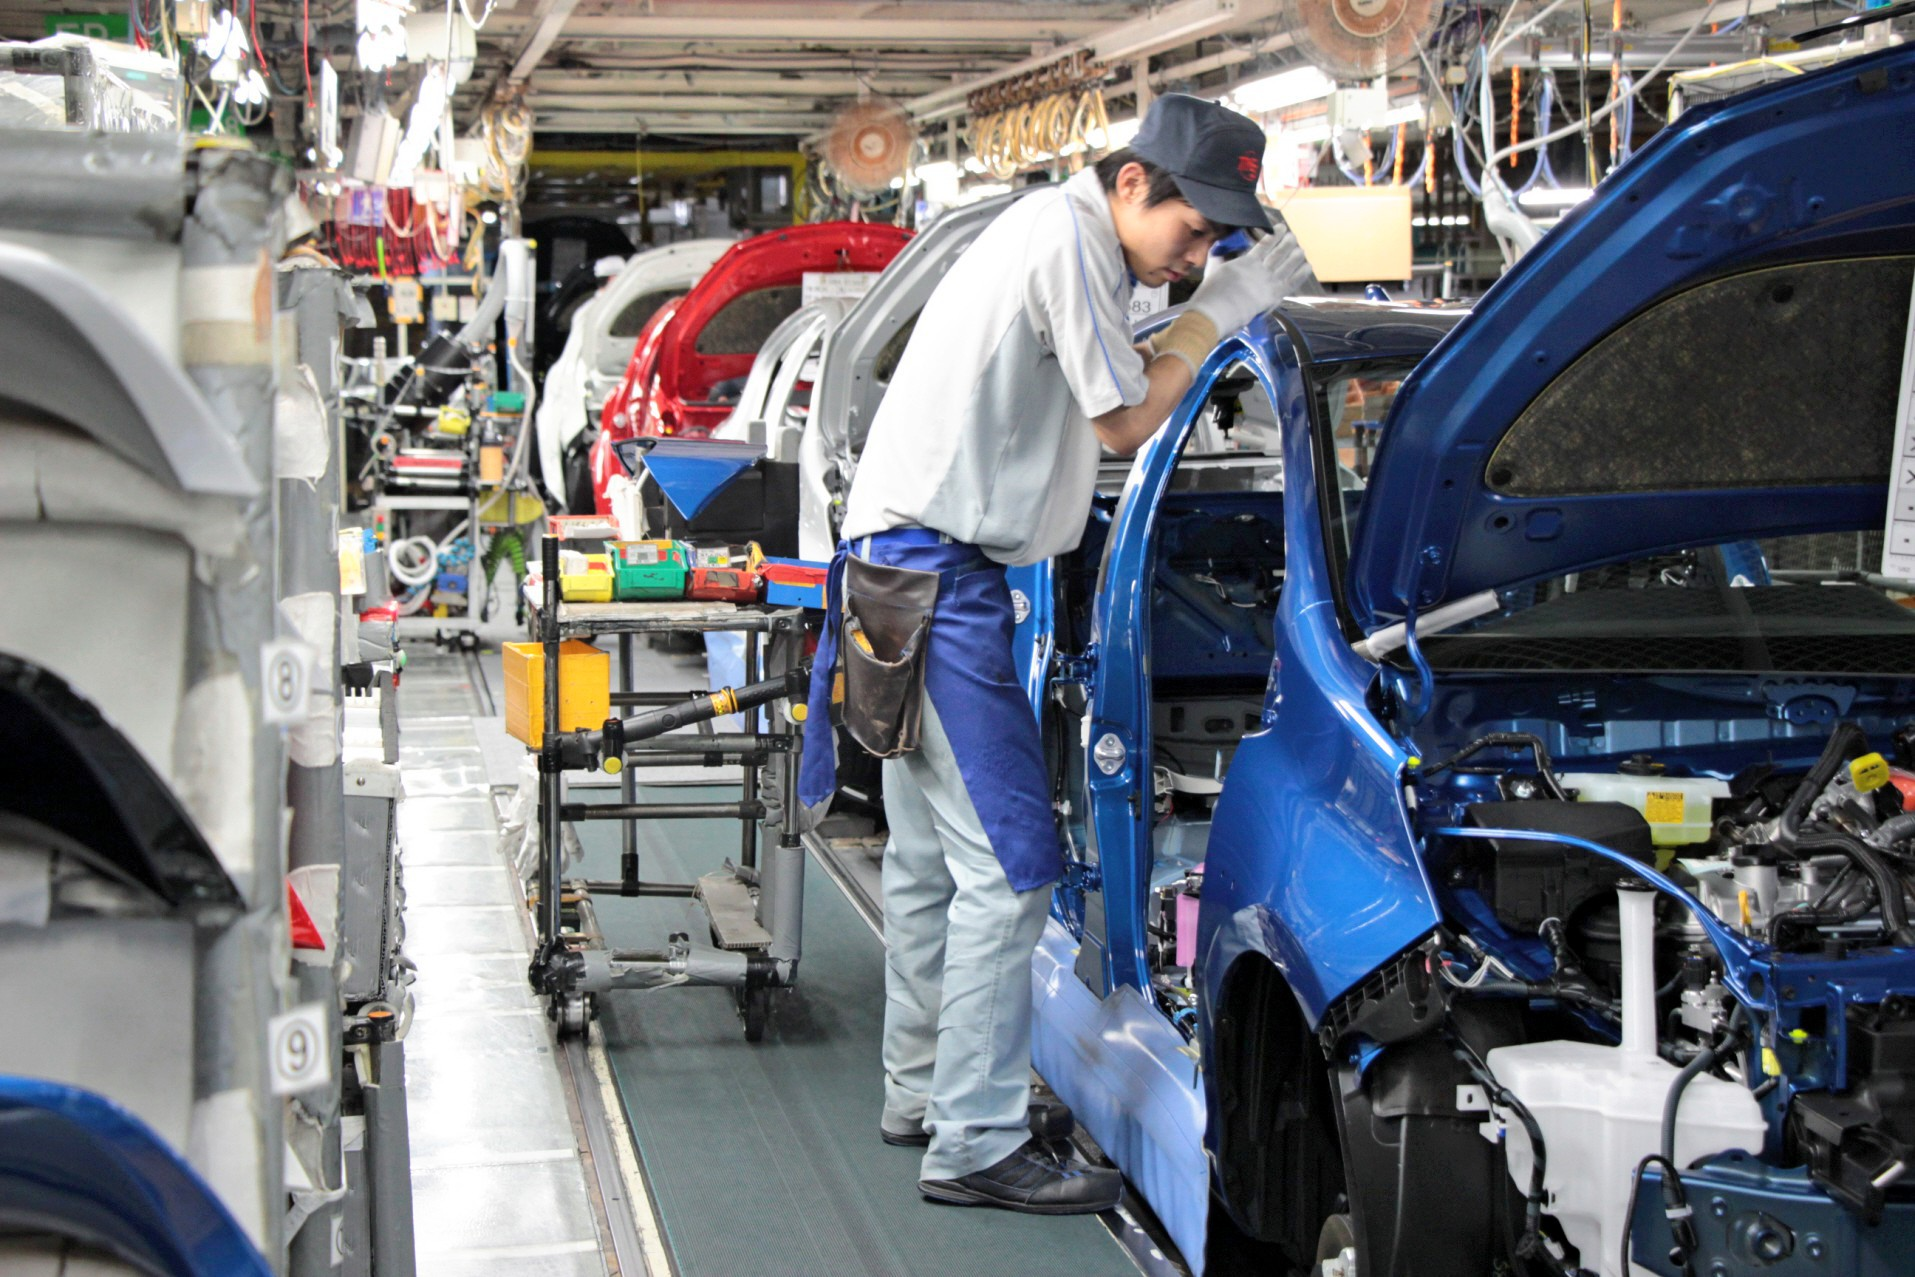 Toyota takes 'just-in-time' production to another level - Nikkei Asia